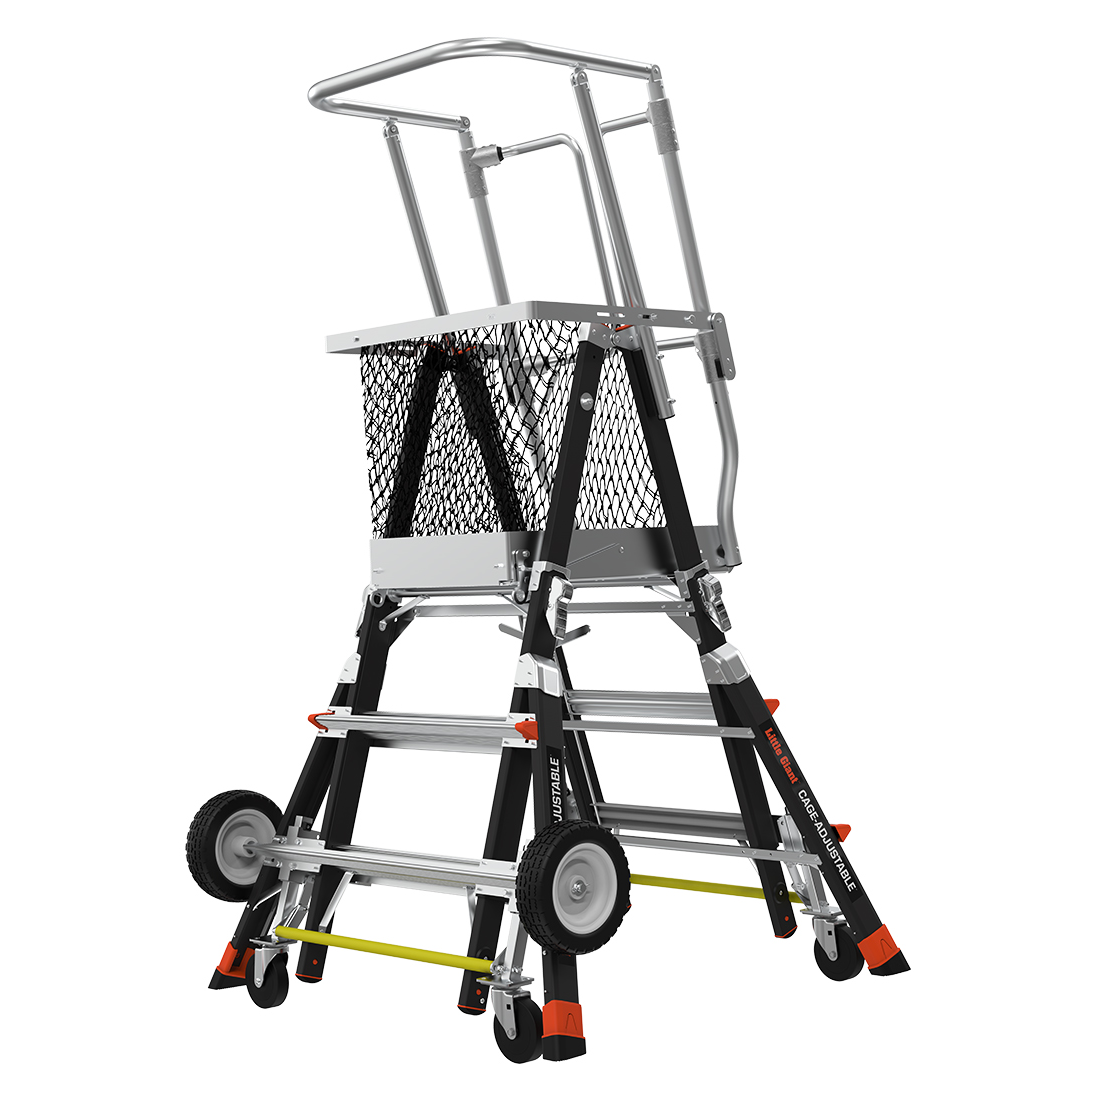 Adj. Safety Cage Model 3-5 Fiberglass Ladder, All-Terrain Wheels,  IAA